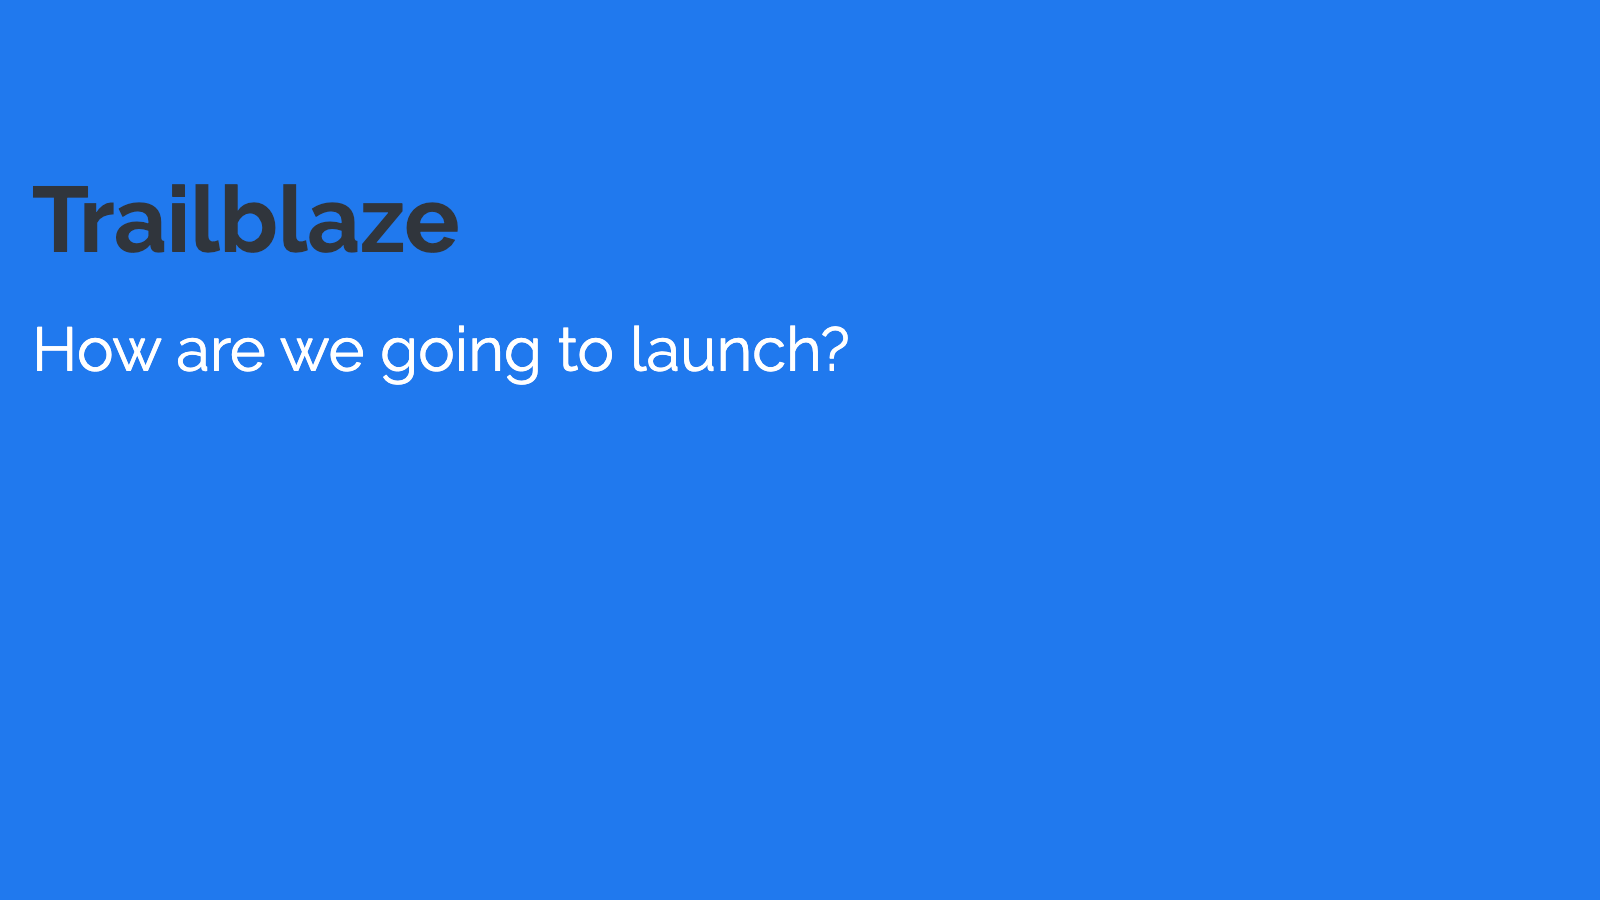 Slide content, Trailblaze. How are we going to launch?